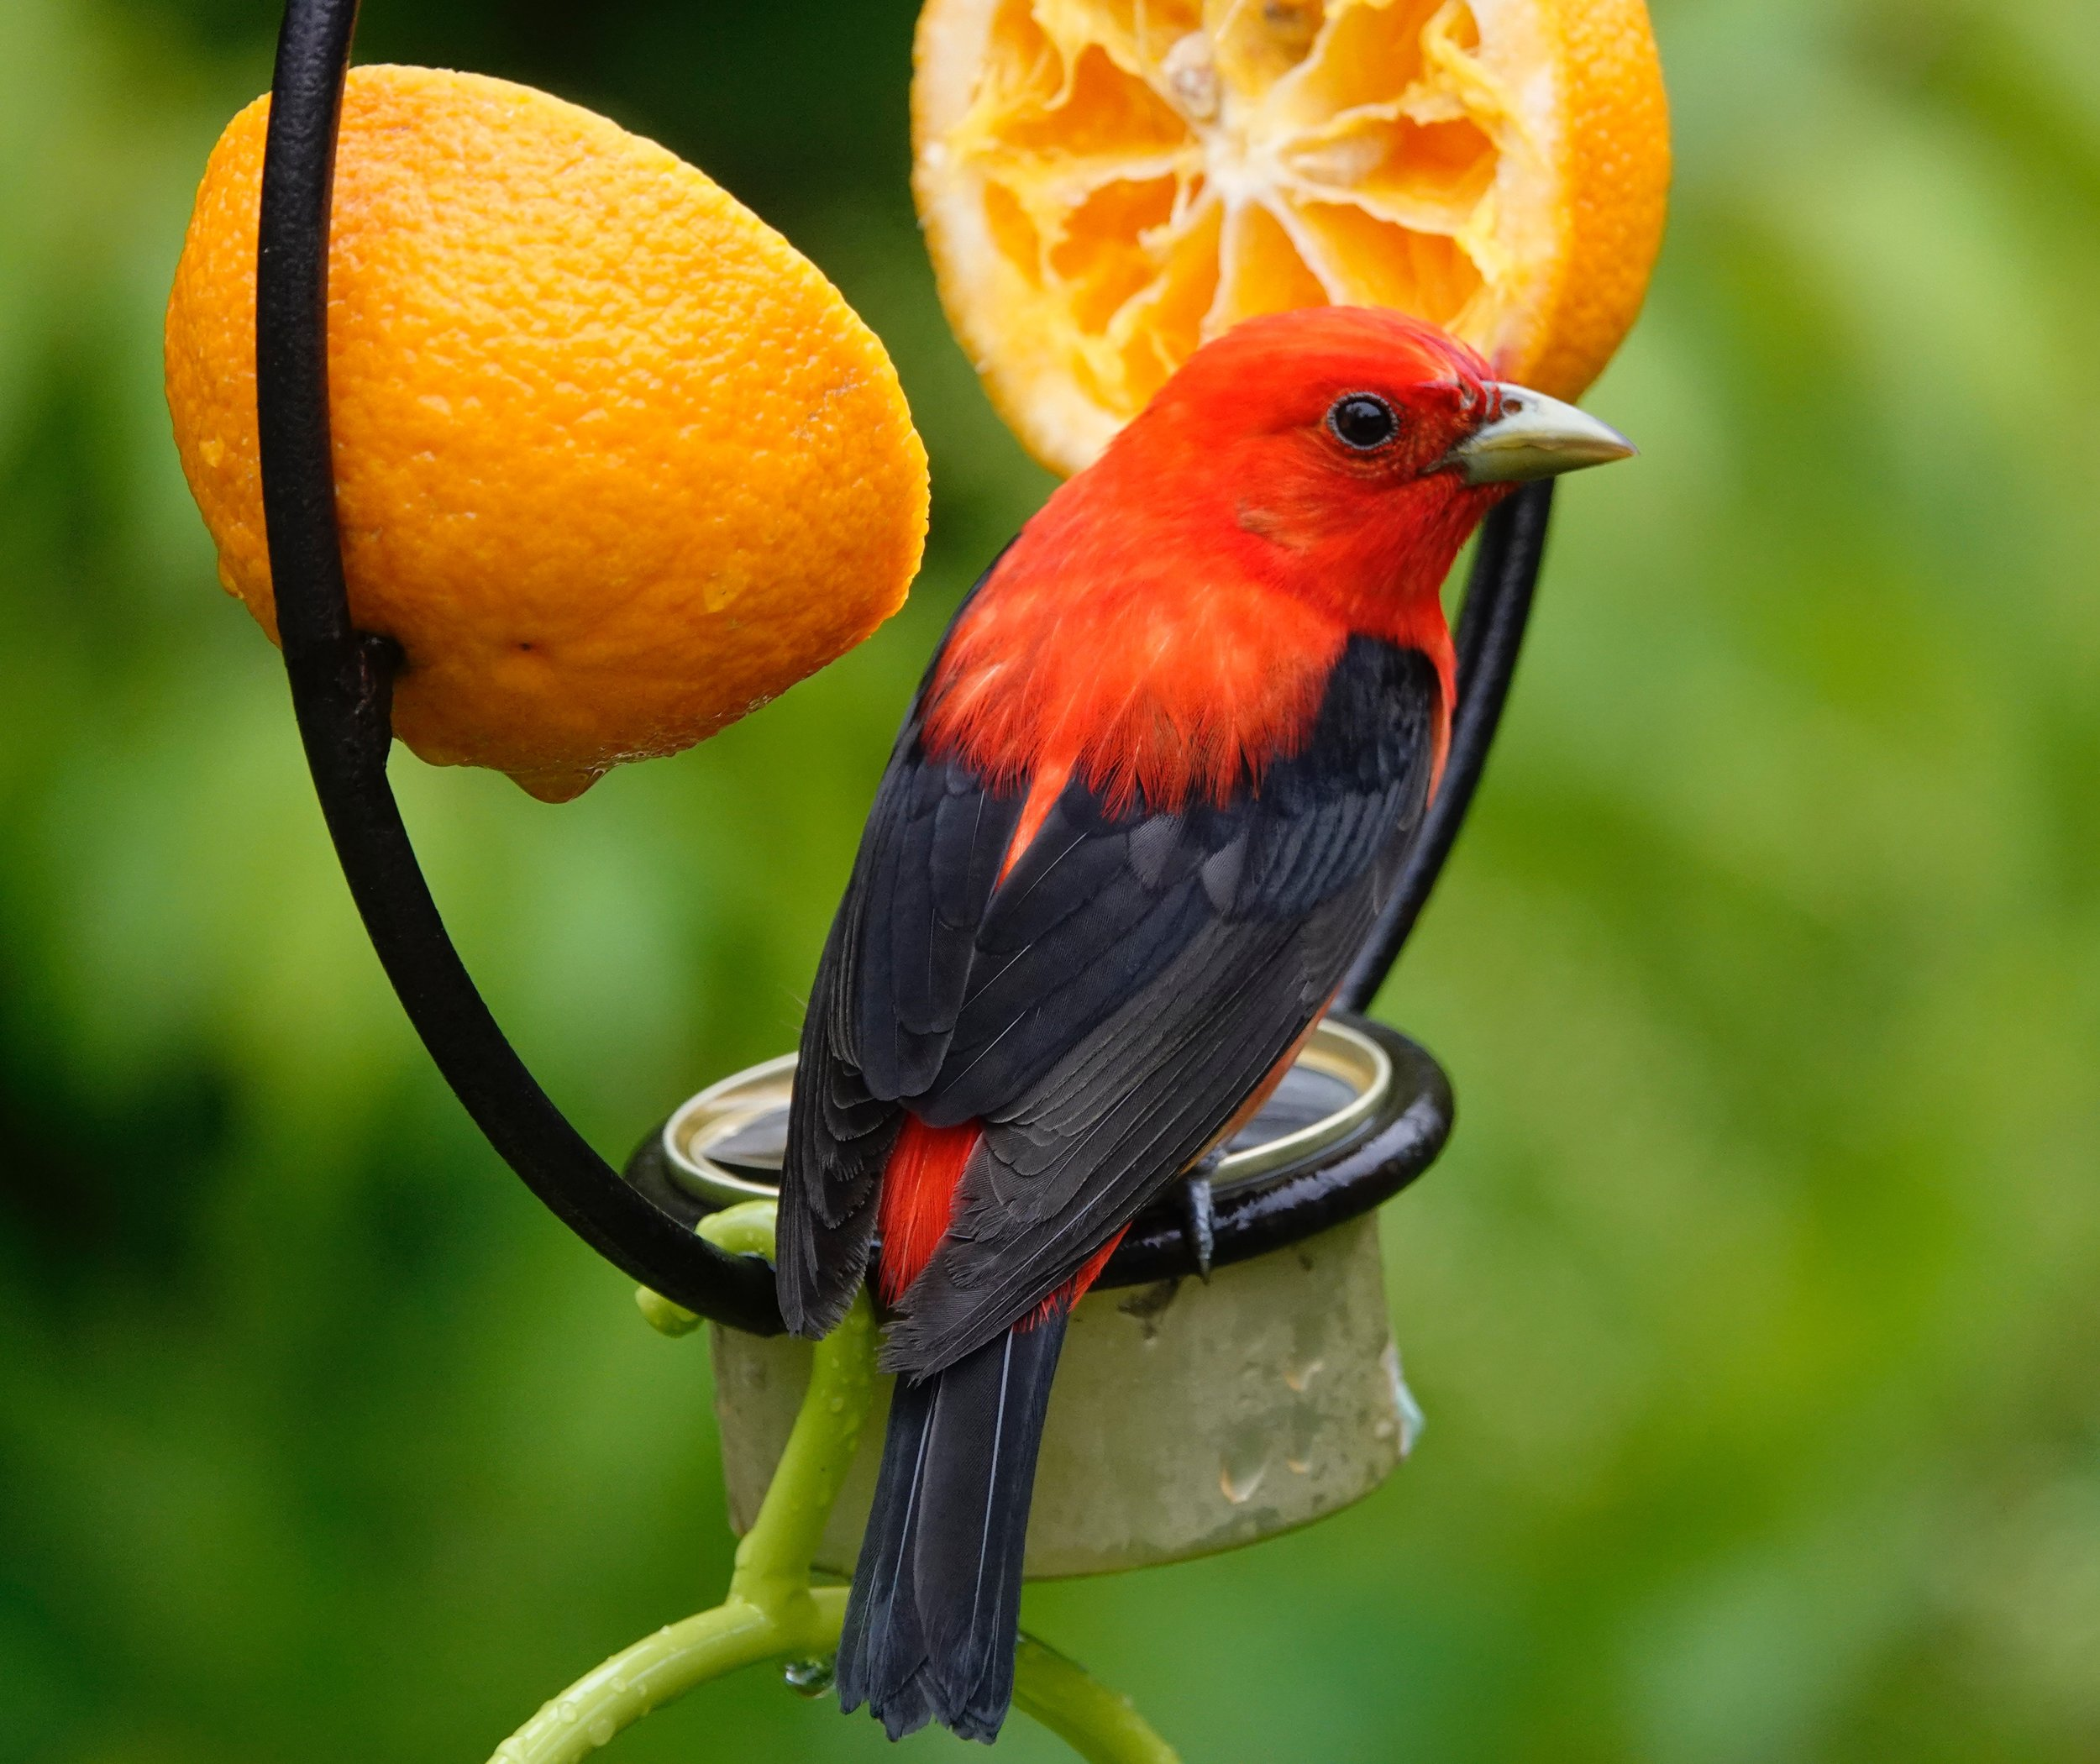 Orange plus grape jelly equals scarlet tanager.